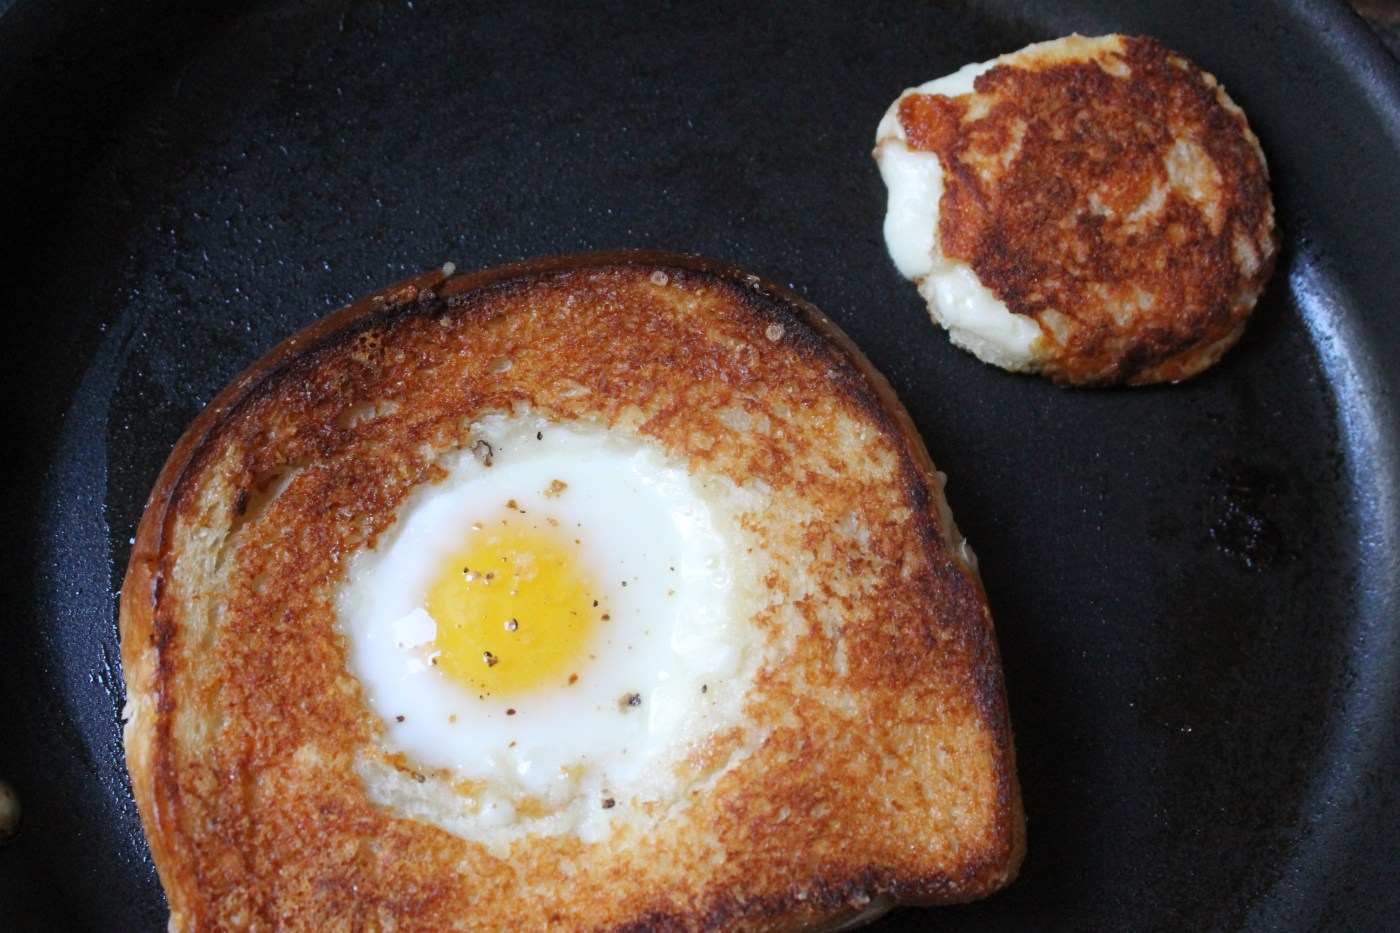 04 grilled cheese egg in a hole c2131a9b44e3679b8fafda17ab8ac9d9.today inline large2x